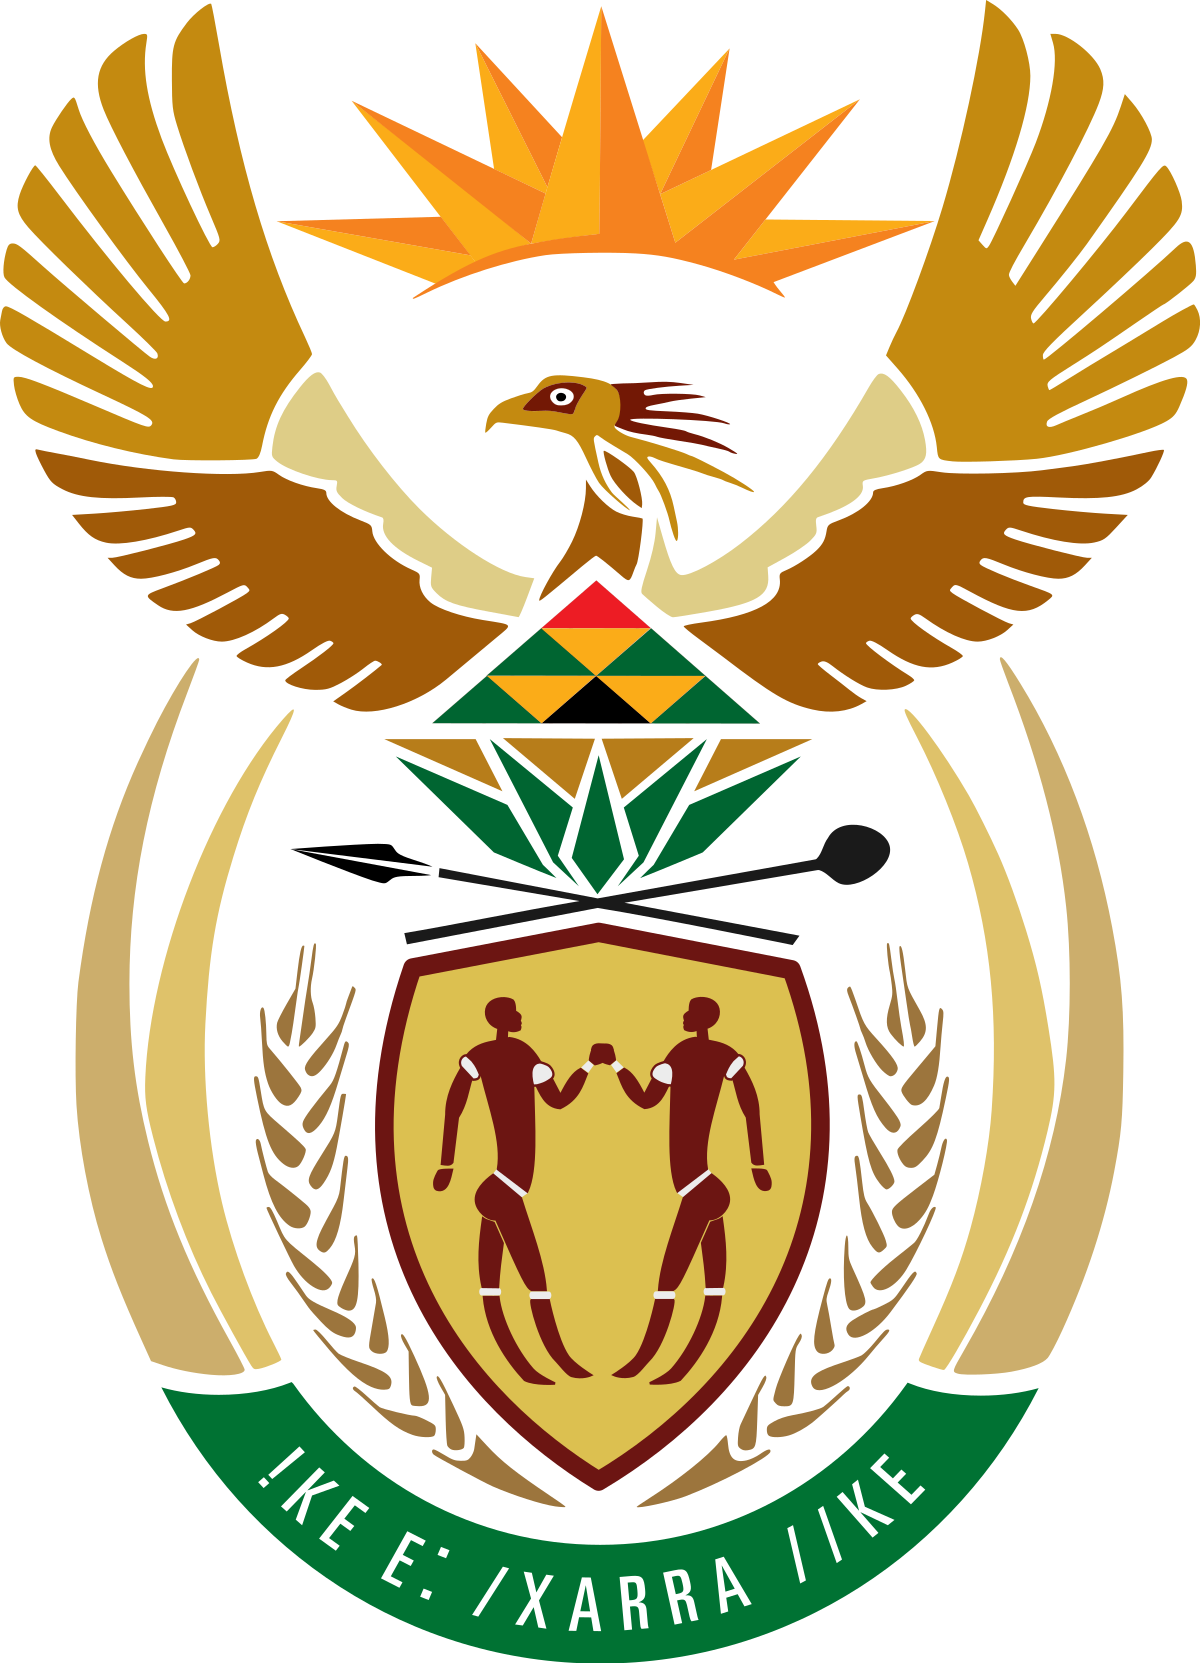 Turn a png into a coat of arms. The national south african